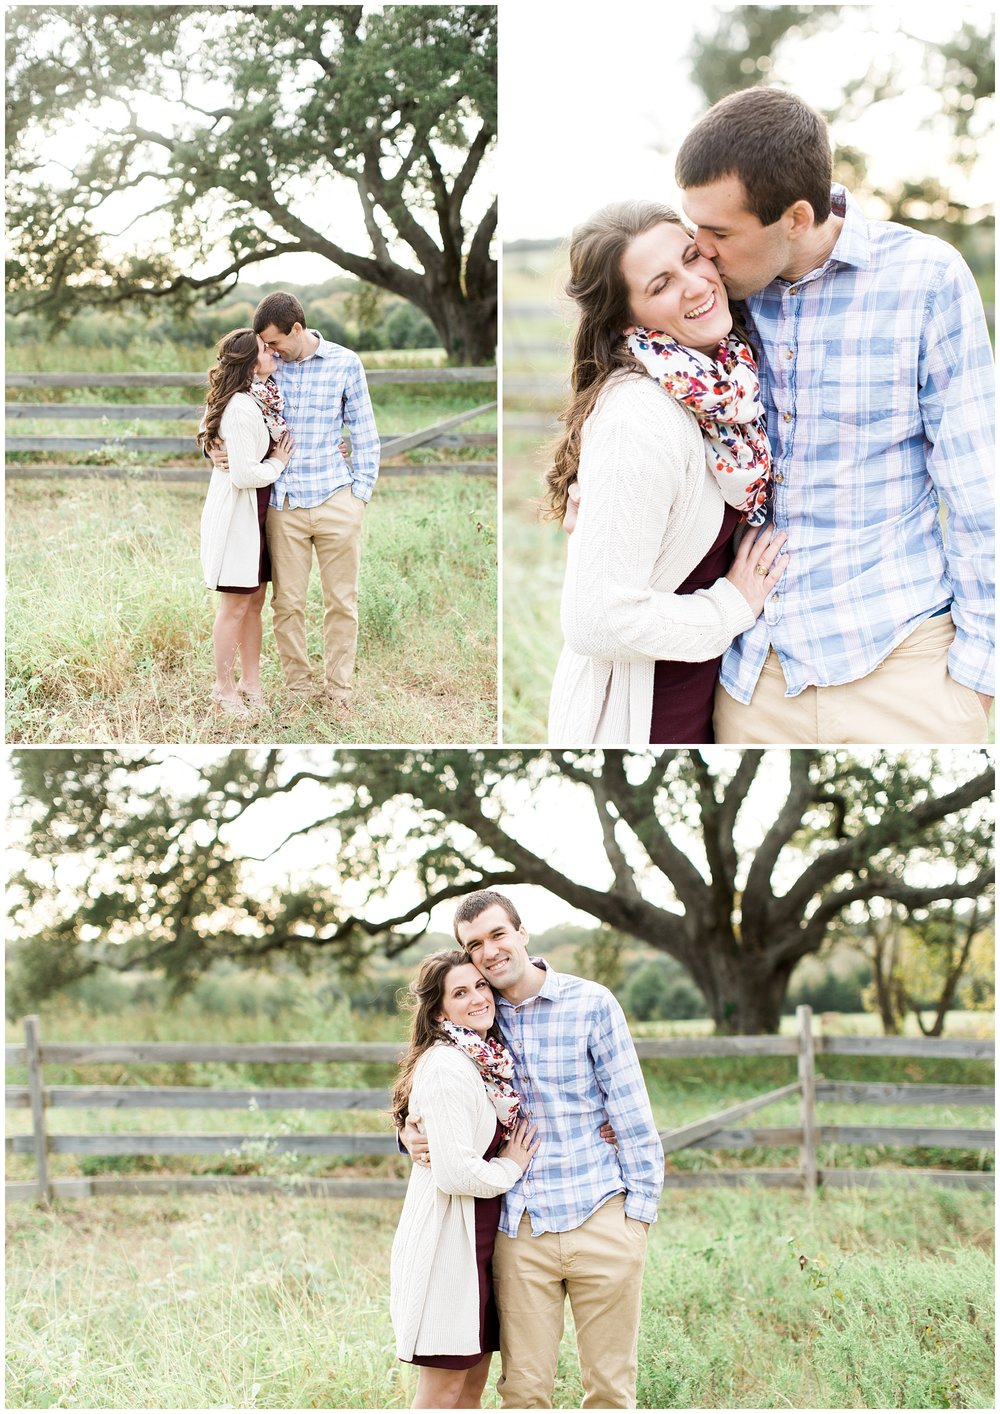 Old_Baylor_Park_Engagement_Session_0007.jpg